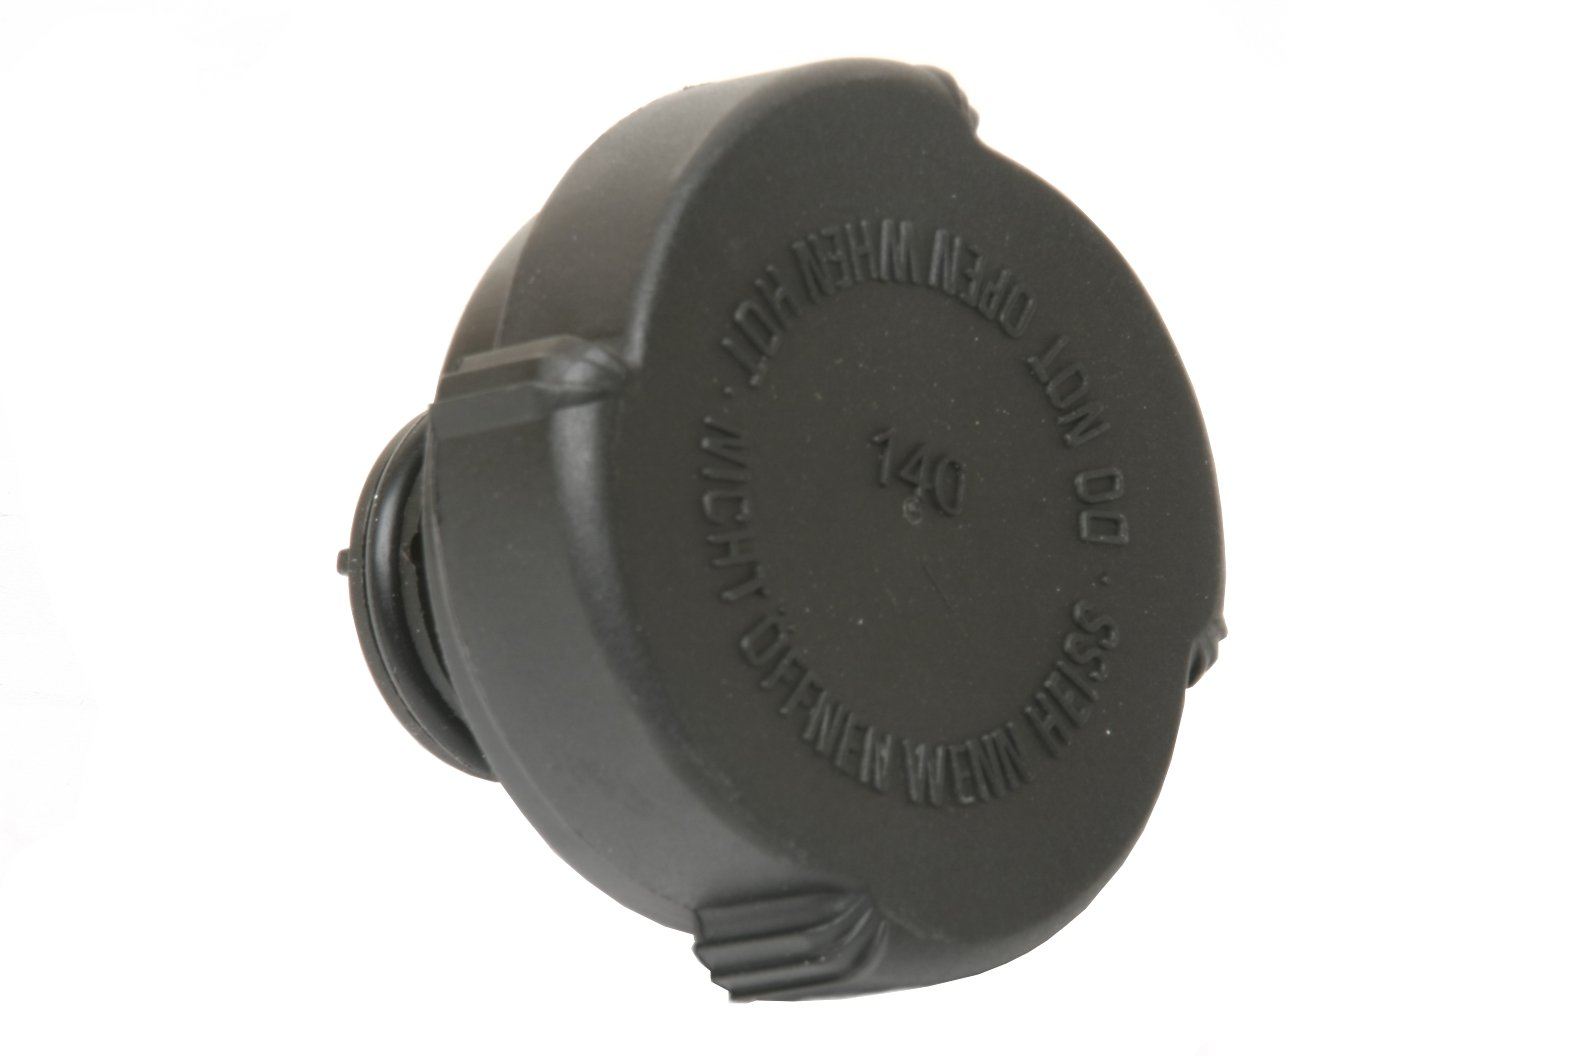 LAND ROVER DISCOVERY 2 1999-2004 / RANGE ROVER P38 1995-2002 / - OEM EXPANSION TANK CAP - PART# PCD000070